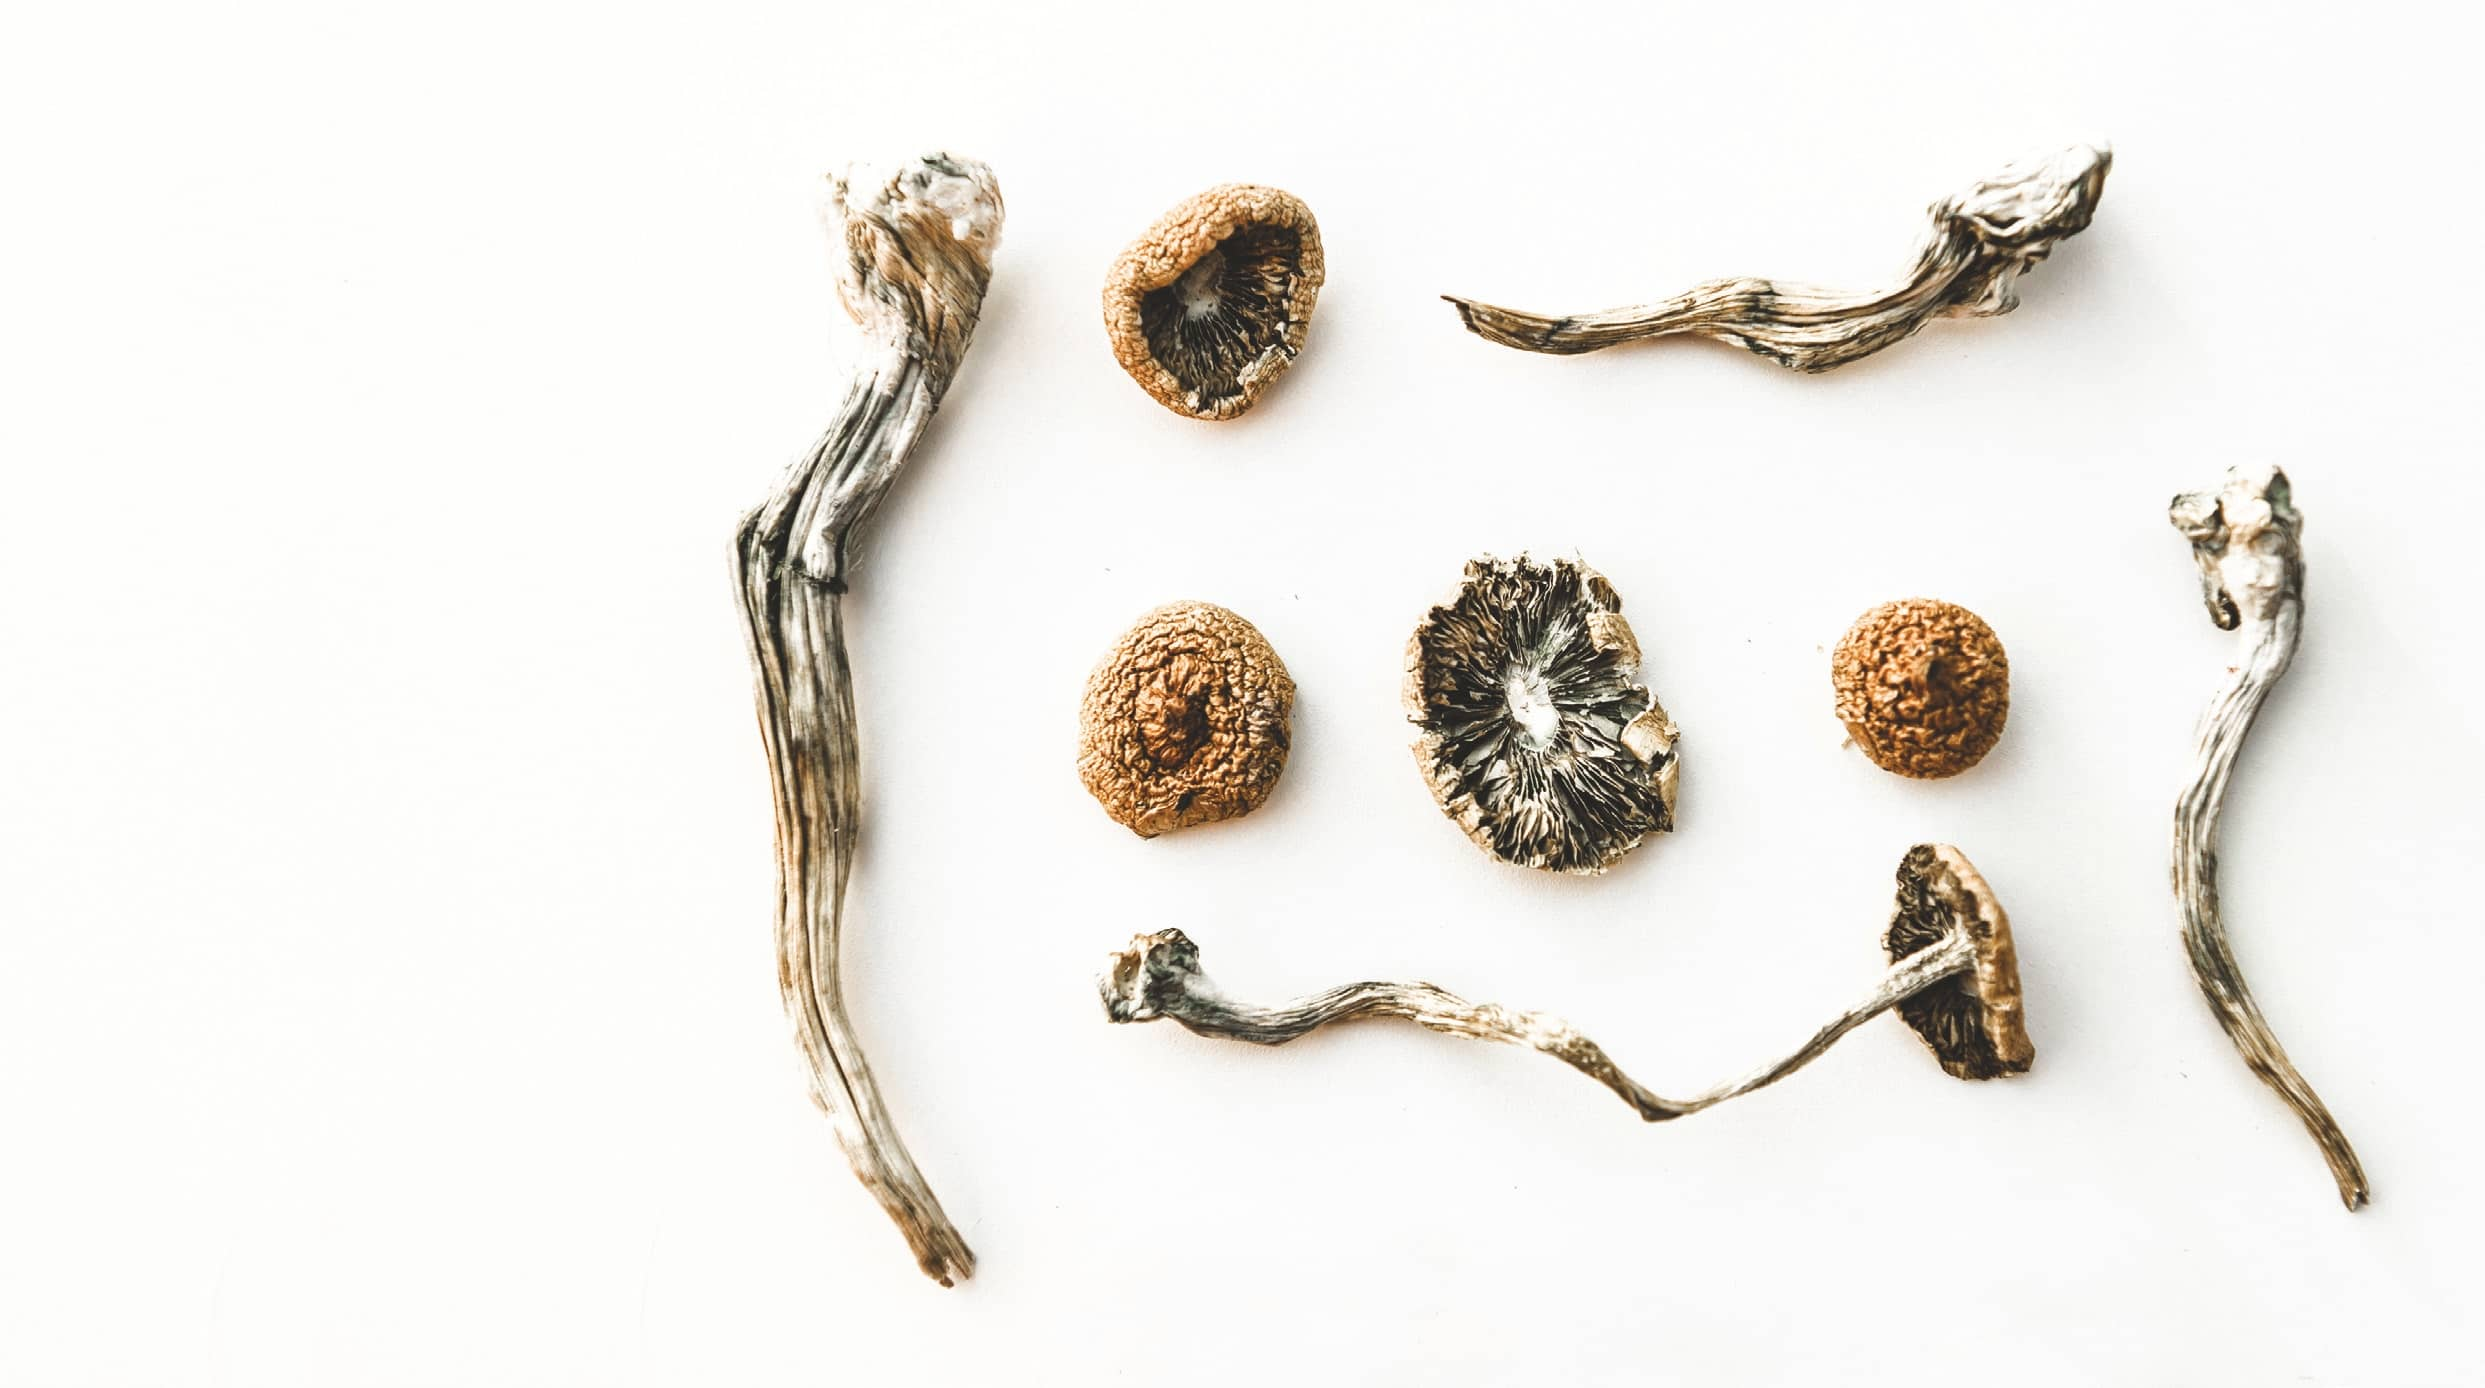 SHROOMS ARE ON THE D.C. BALLOT